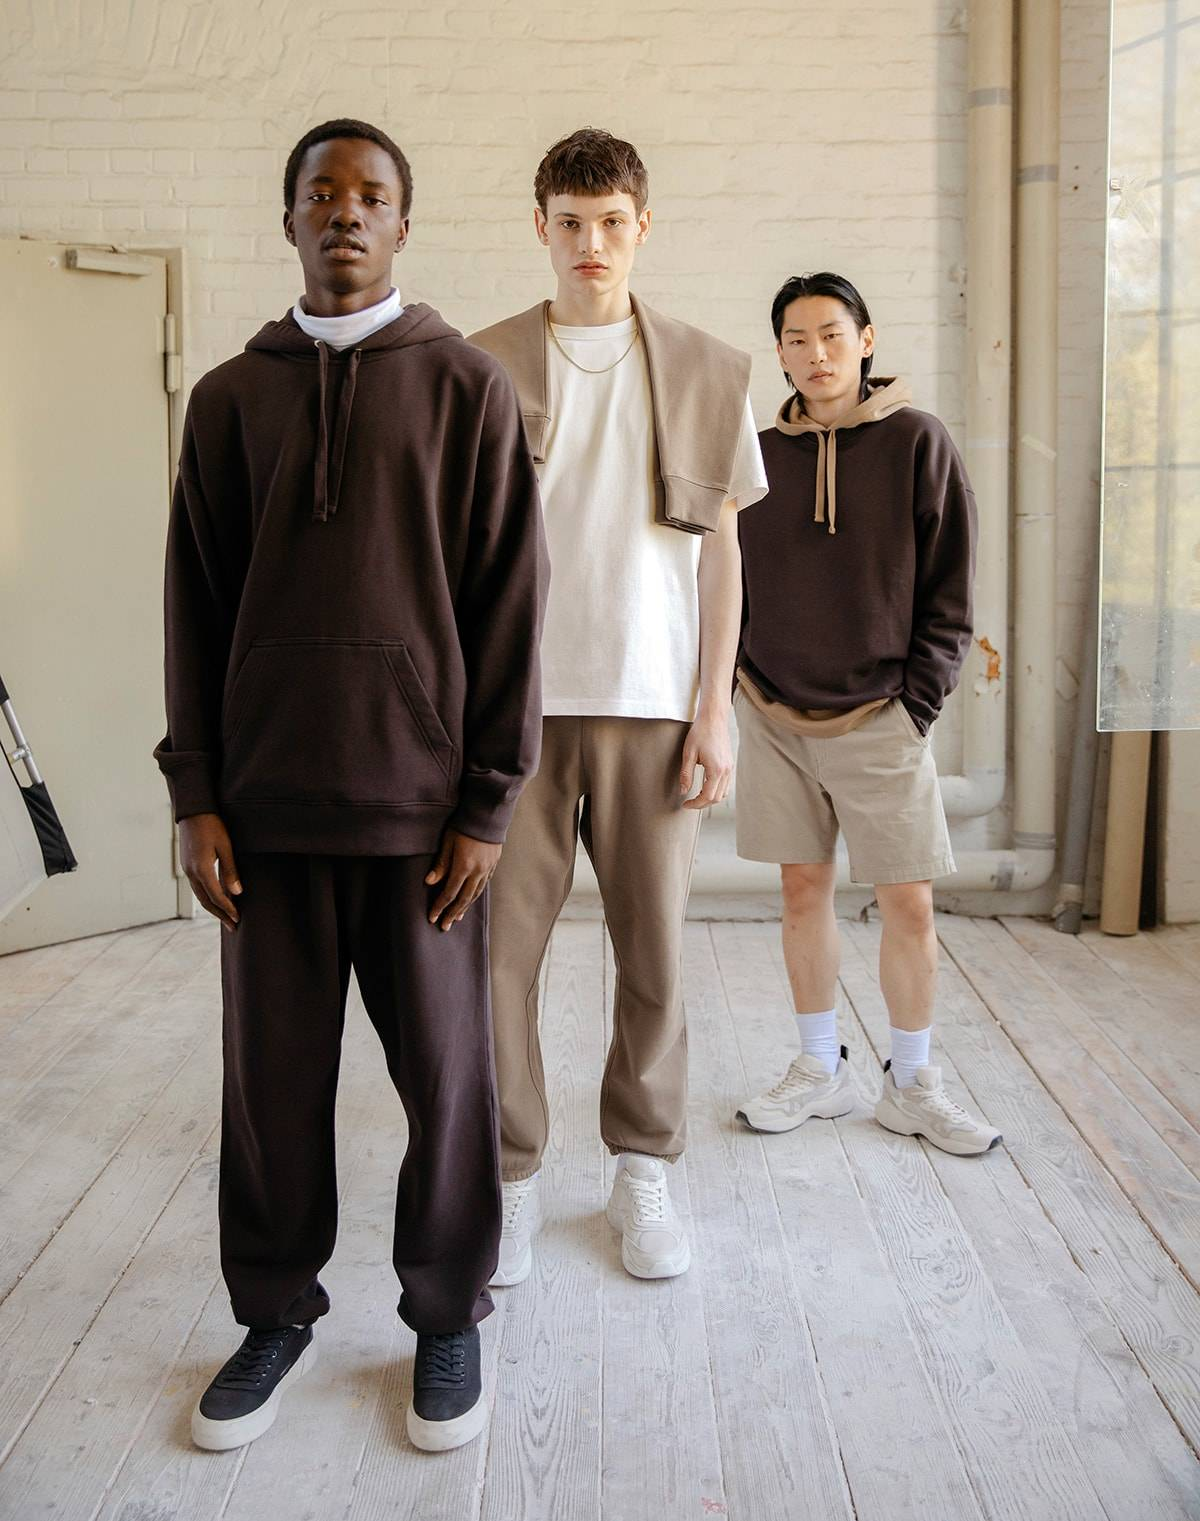 H&M launches a menswear collection 'Black Staples' with Highsnobiety